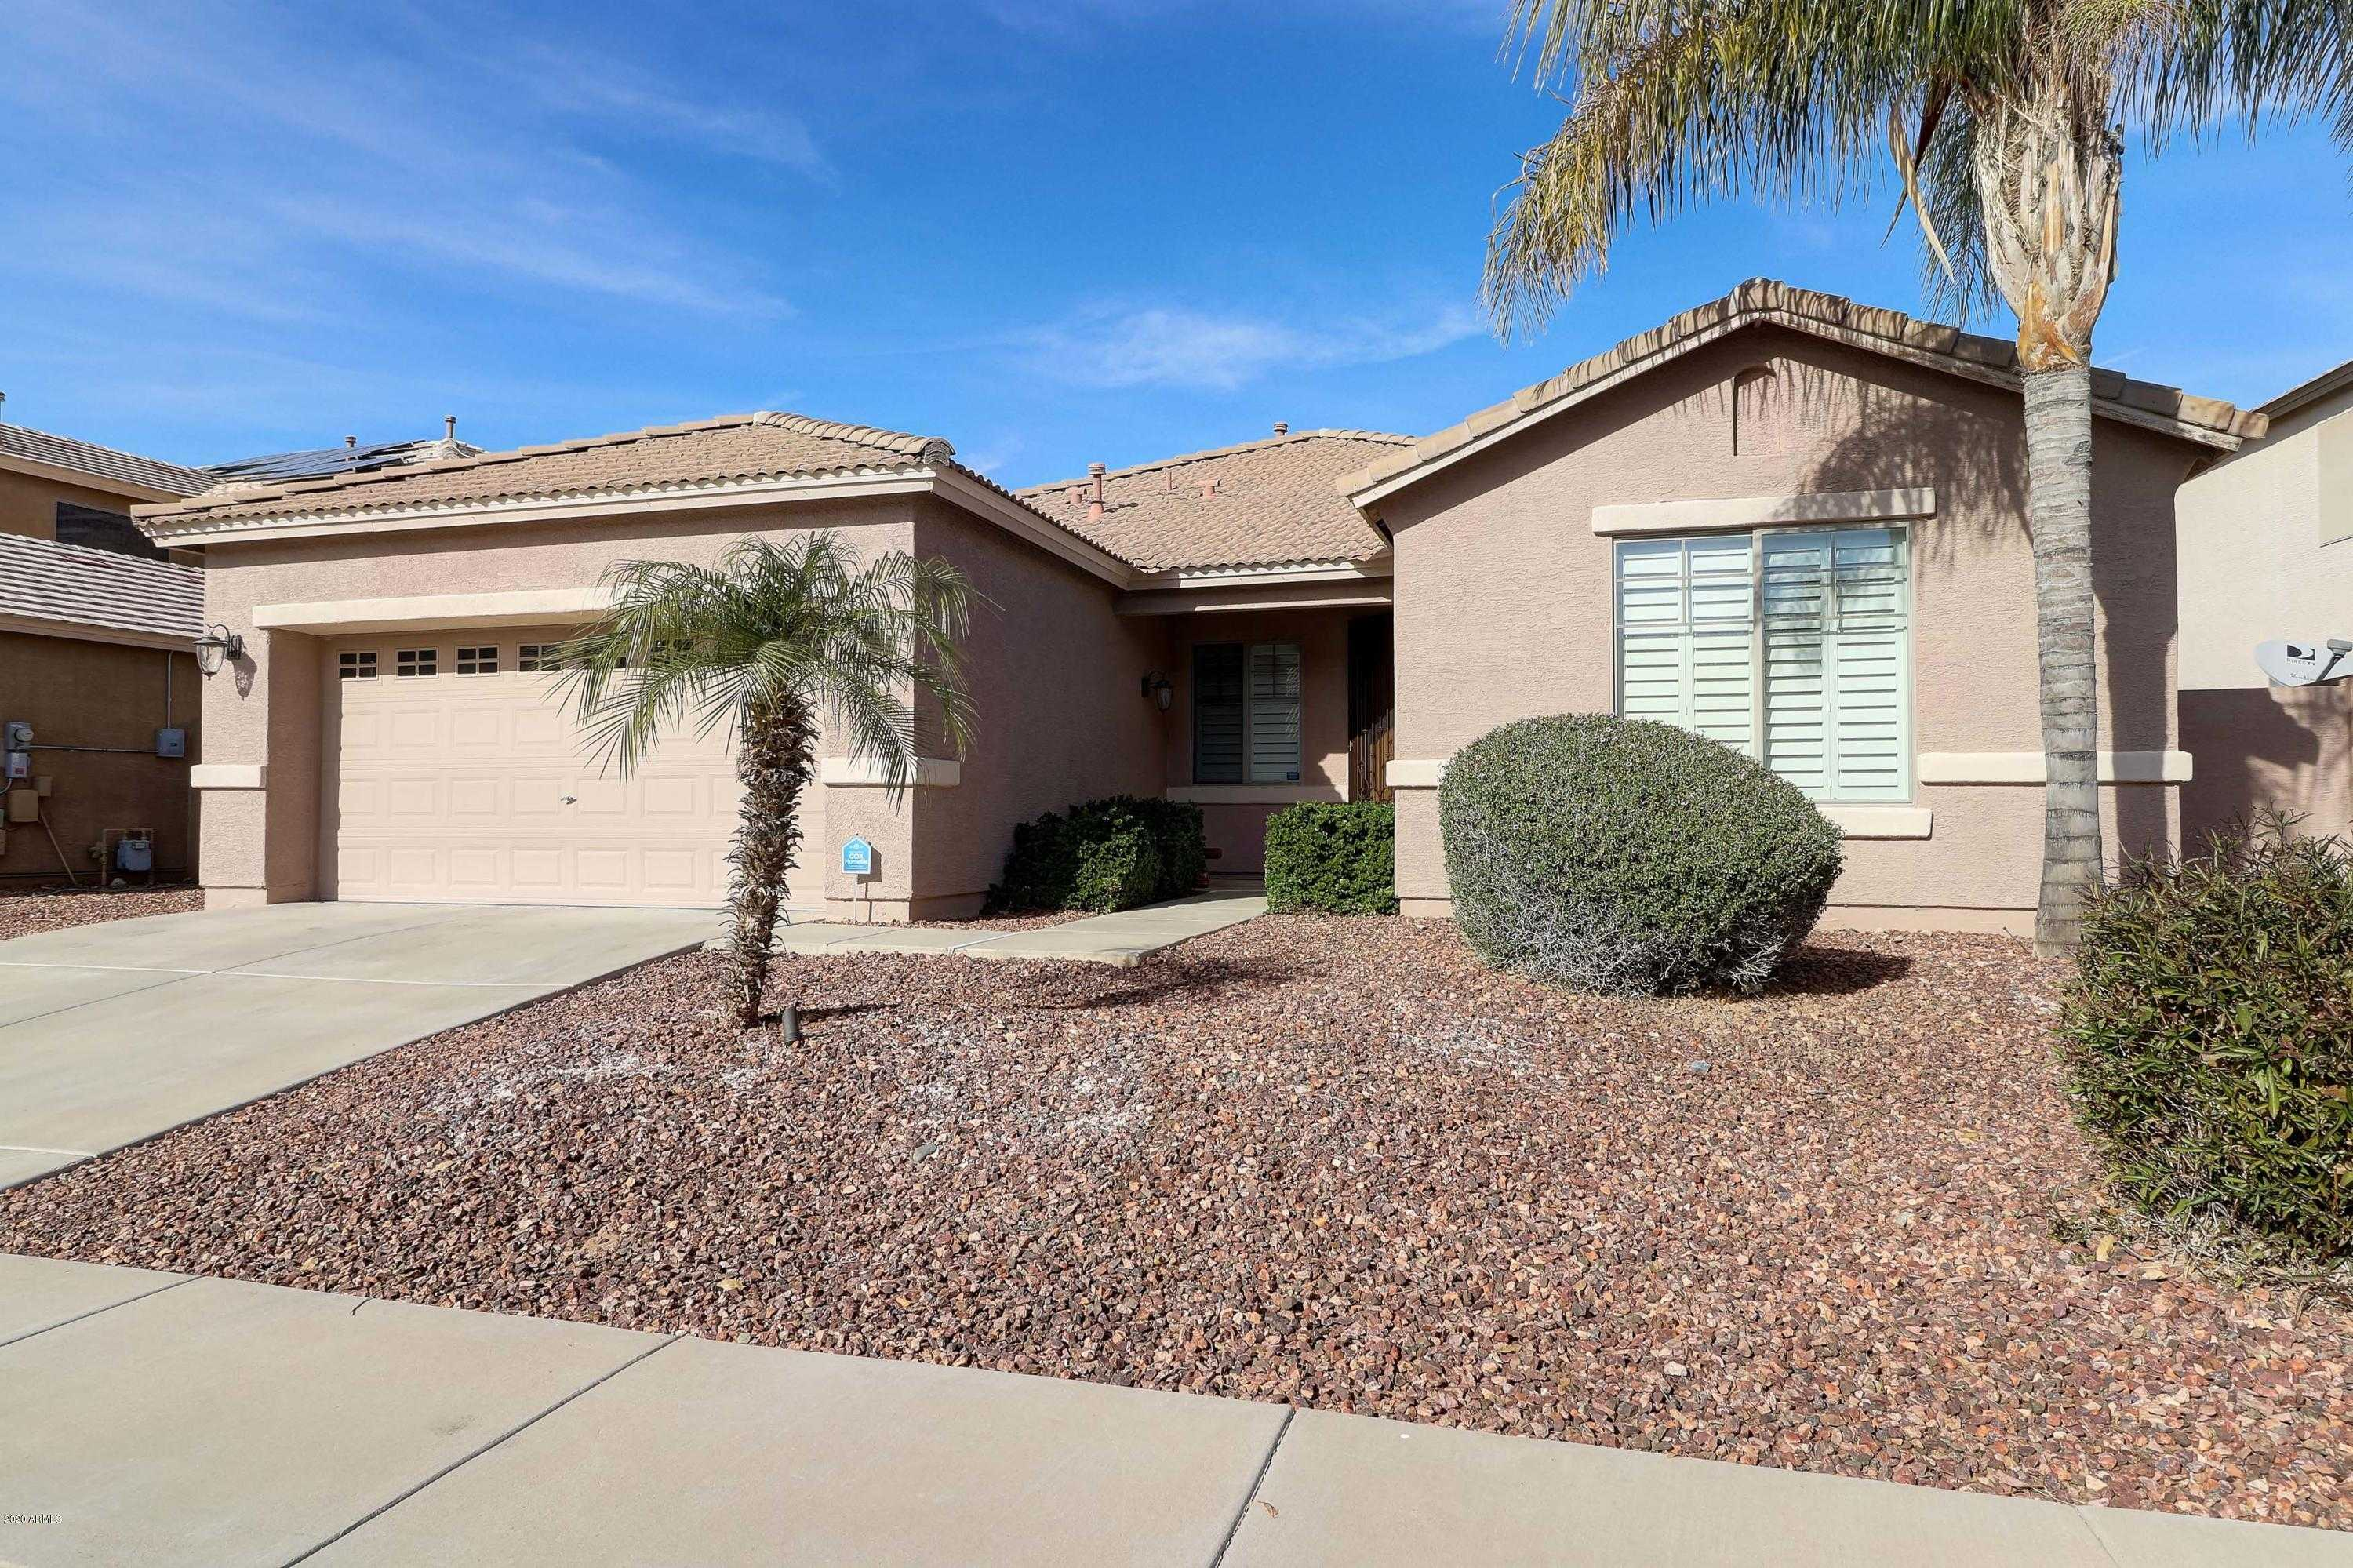 $375,000 - 3Br/2Ba - Home for Sale in Mission Ranch, Glendale